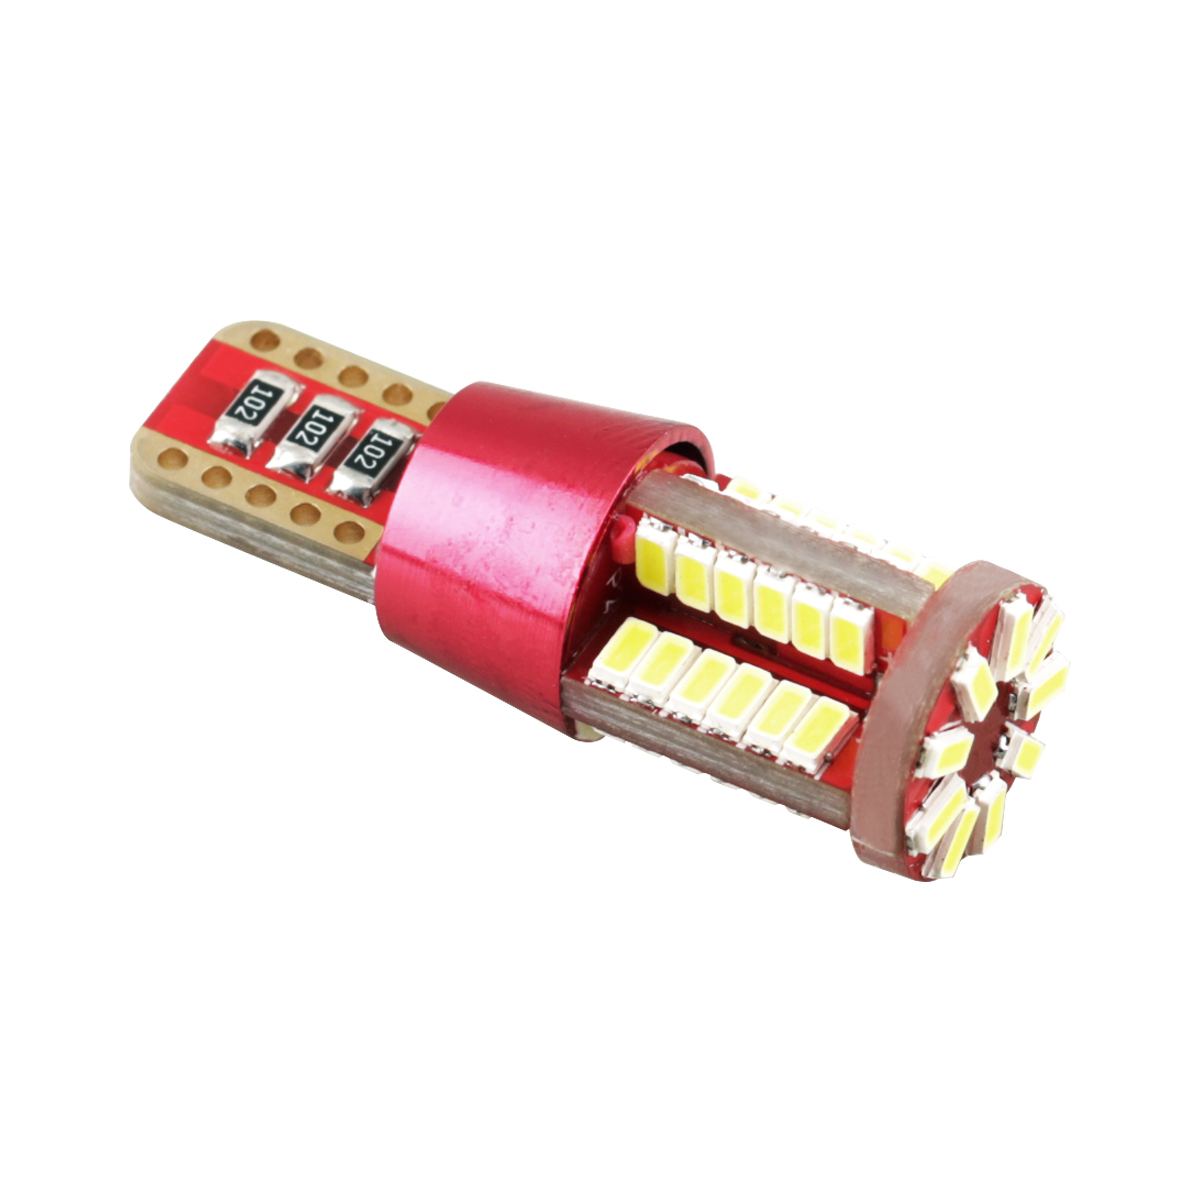 Wholesale T10-LED light bulb 57SMD 3014 car interior led bulb canbus lamp T10/T20/T15/1156/1157 /7443/Ba5s/3156/3157 C5W led